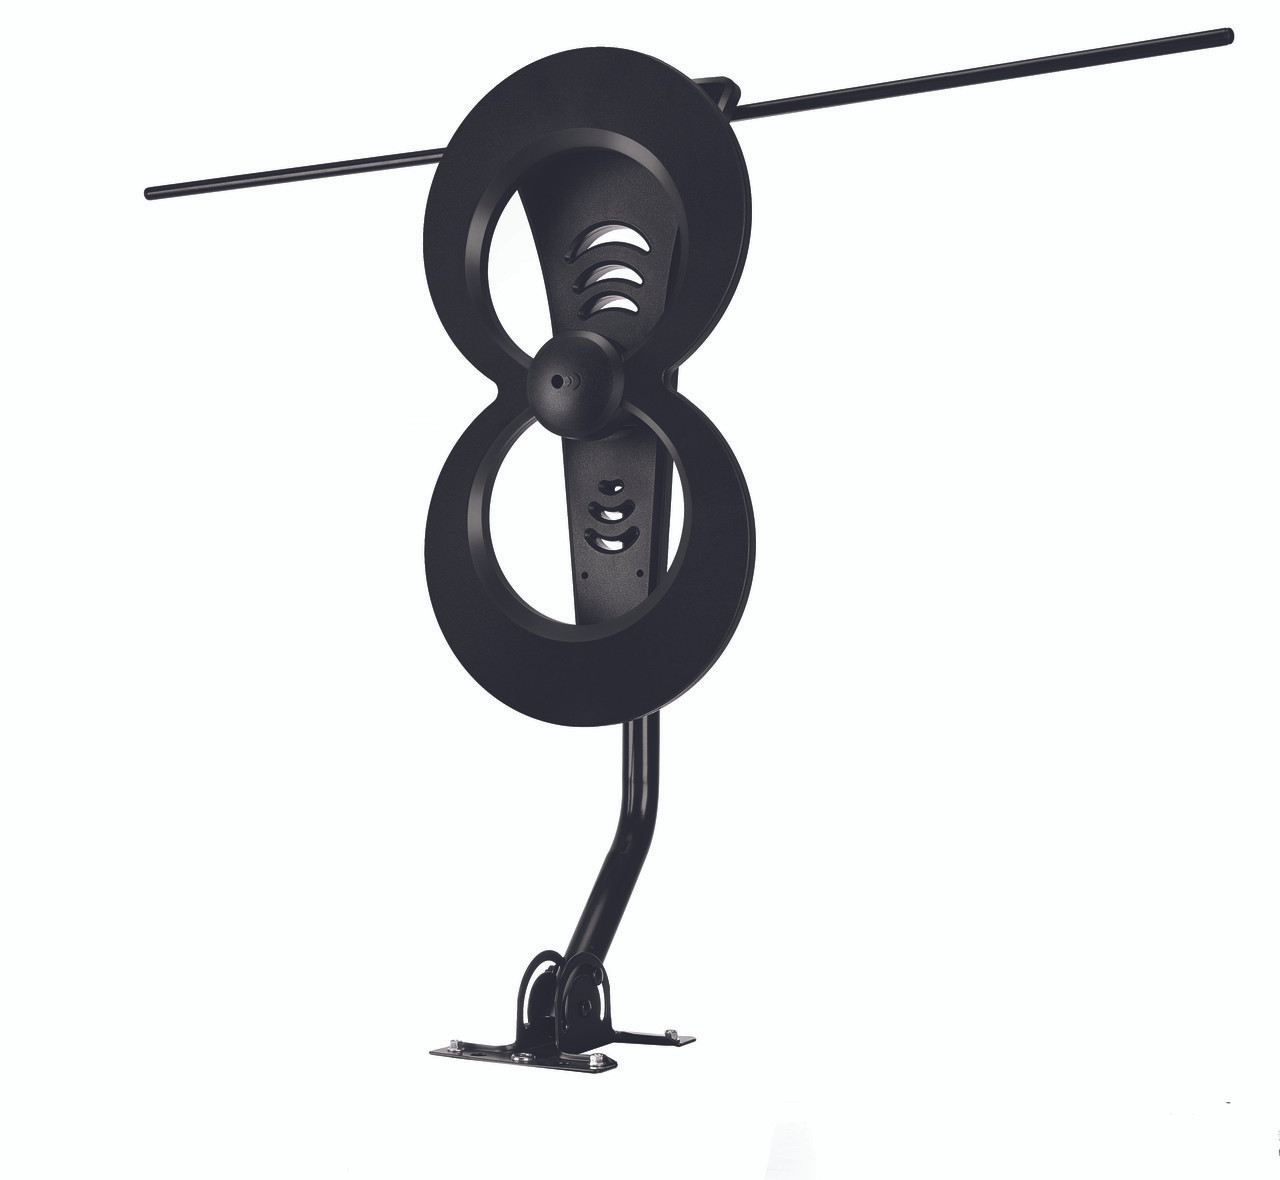 ClearStream 2MAX® UHF/VHF Indoor/Outdoor HDTV Antenna with 20